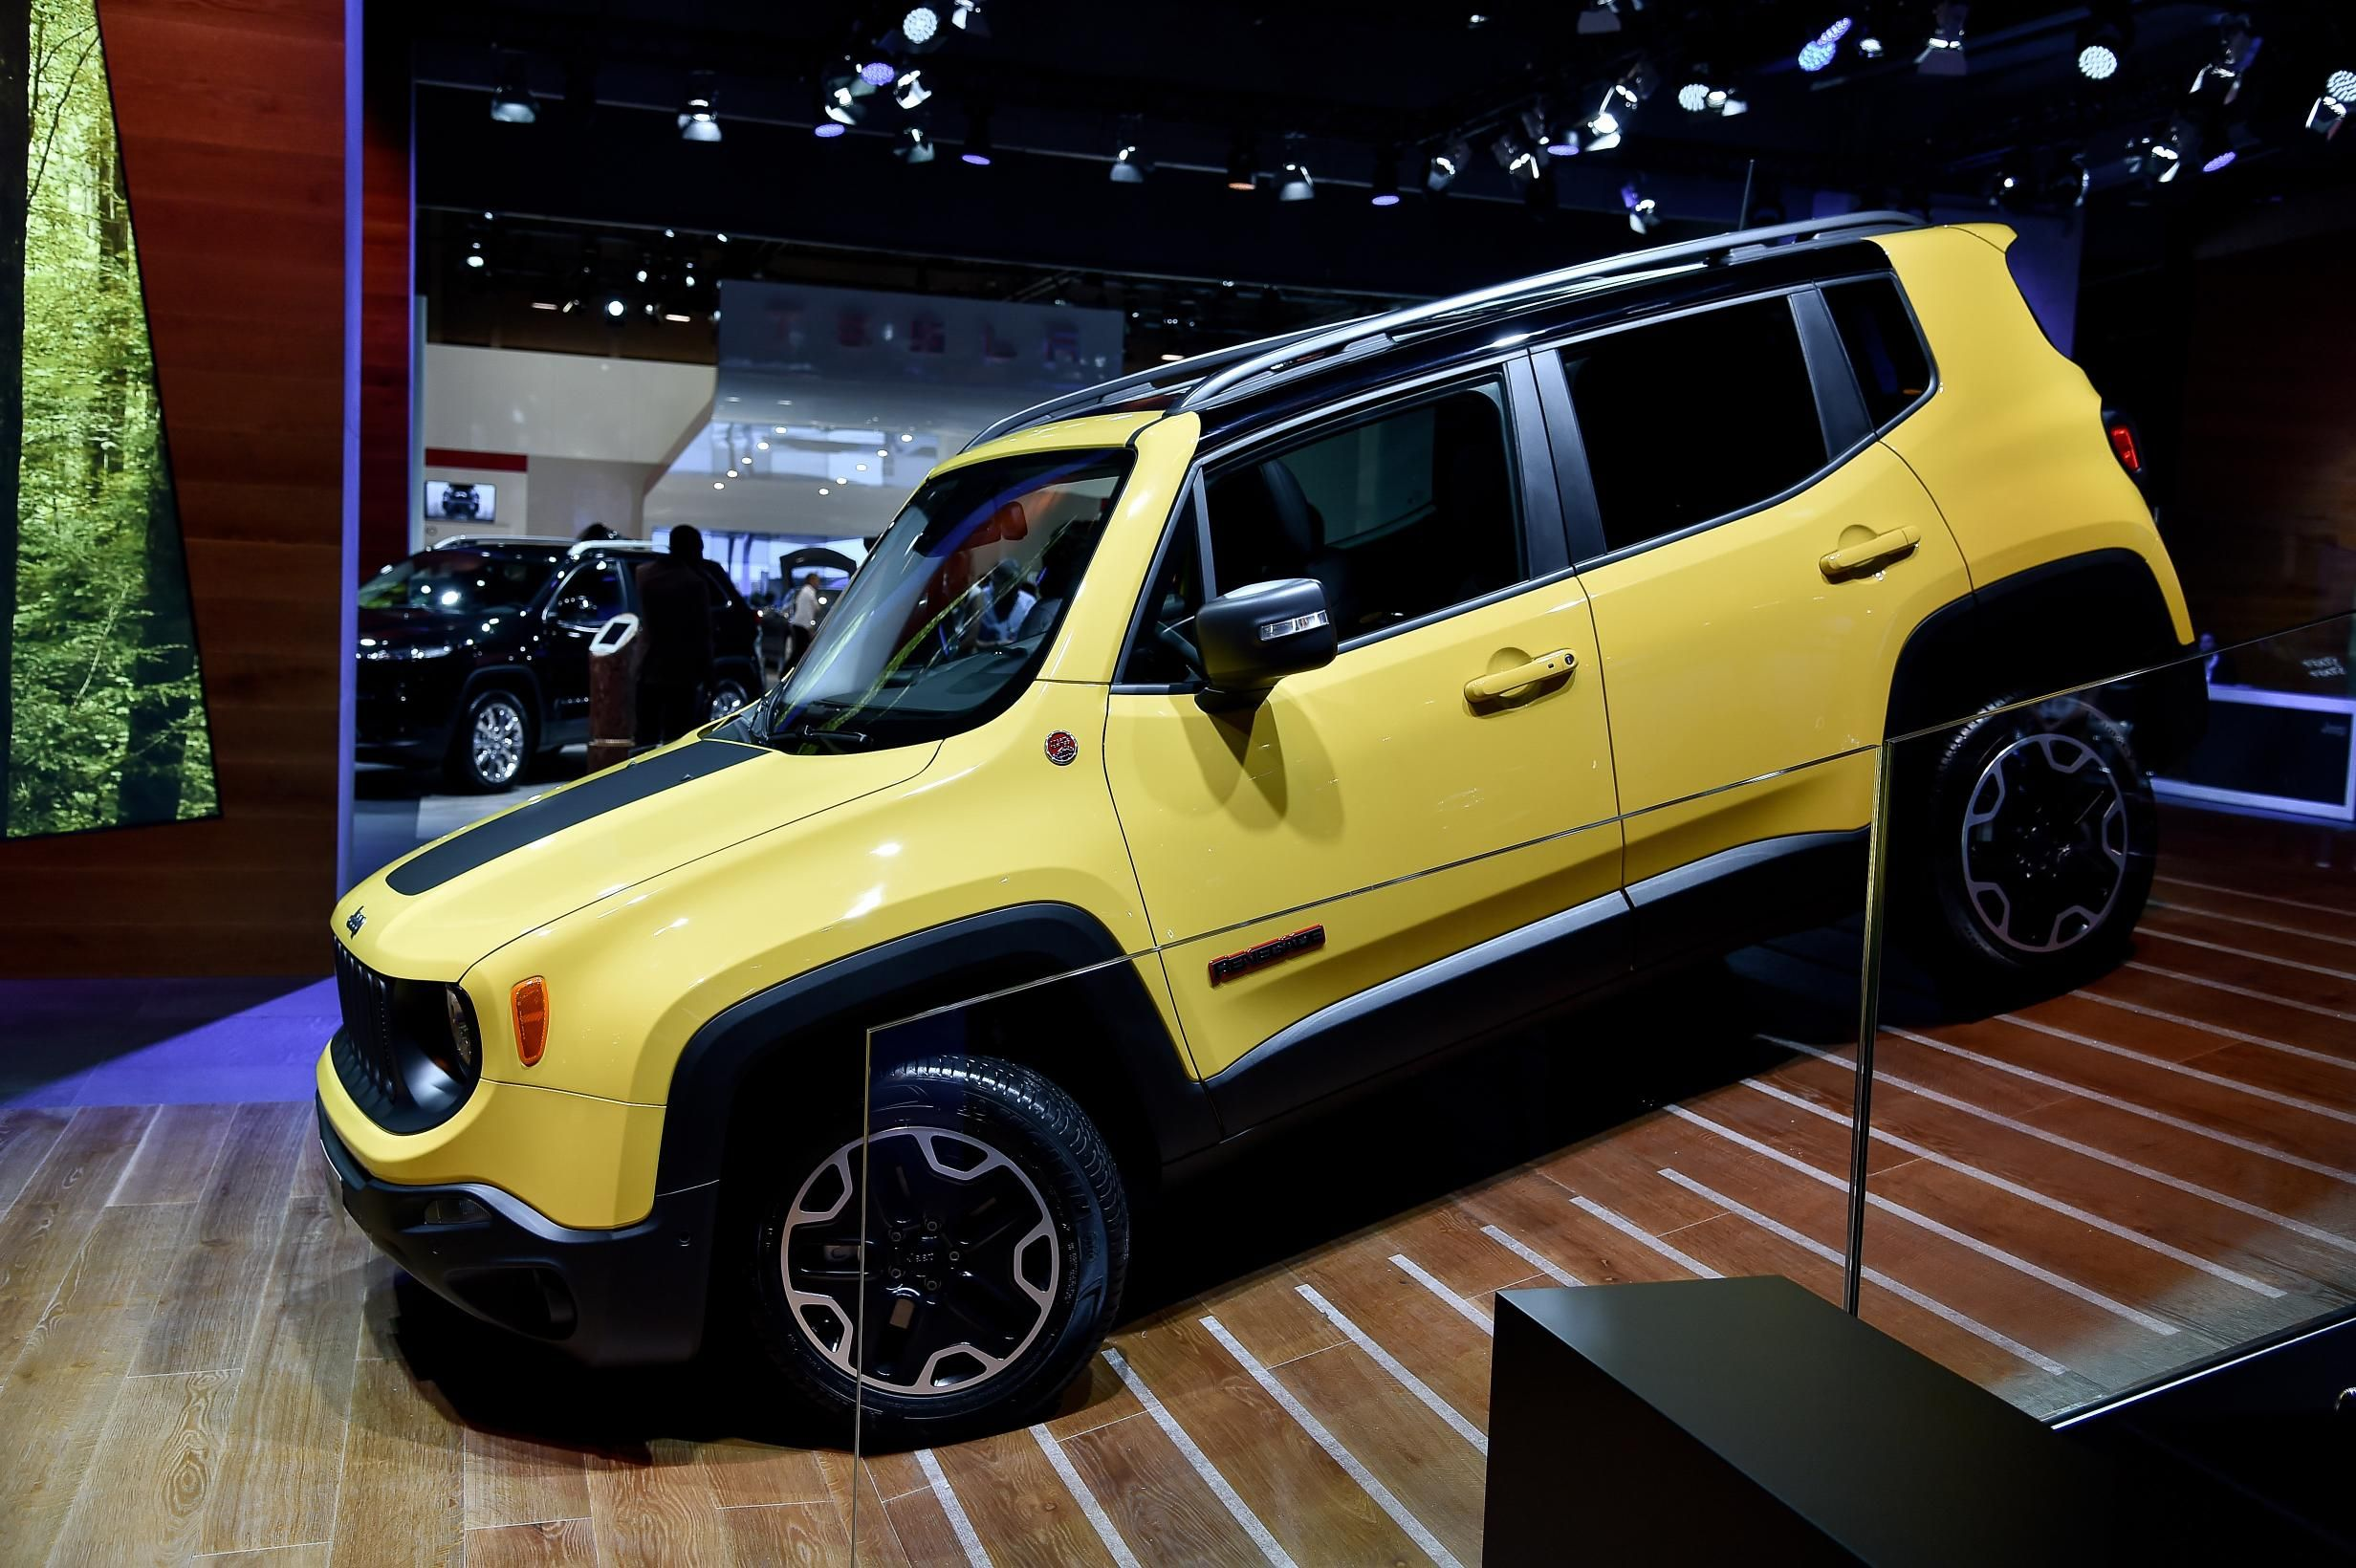 The new jeep renegade i might actually need one of these they re pretty cool looking i miss my jeep my style or lack thereof pinterest jeeps